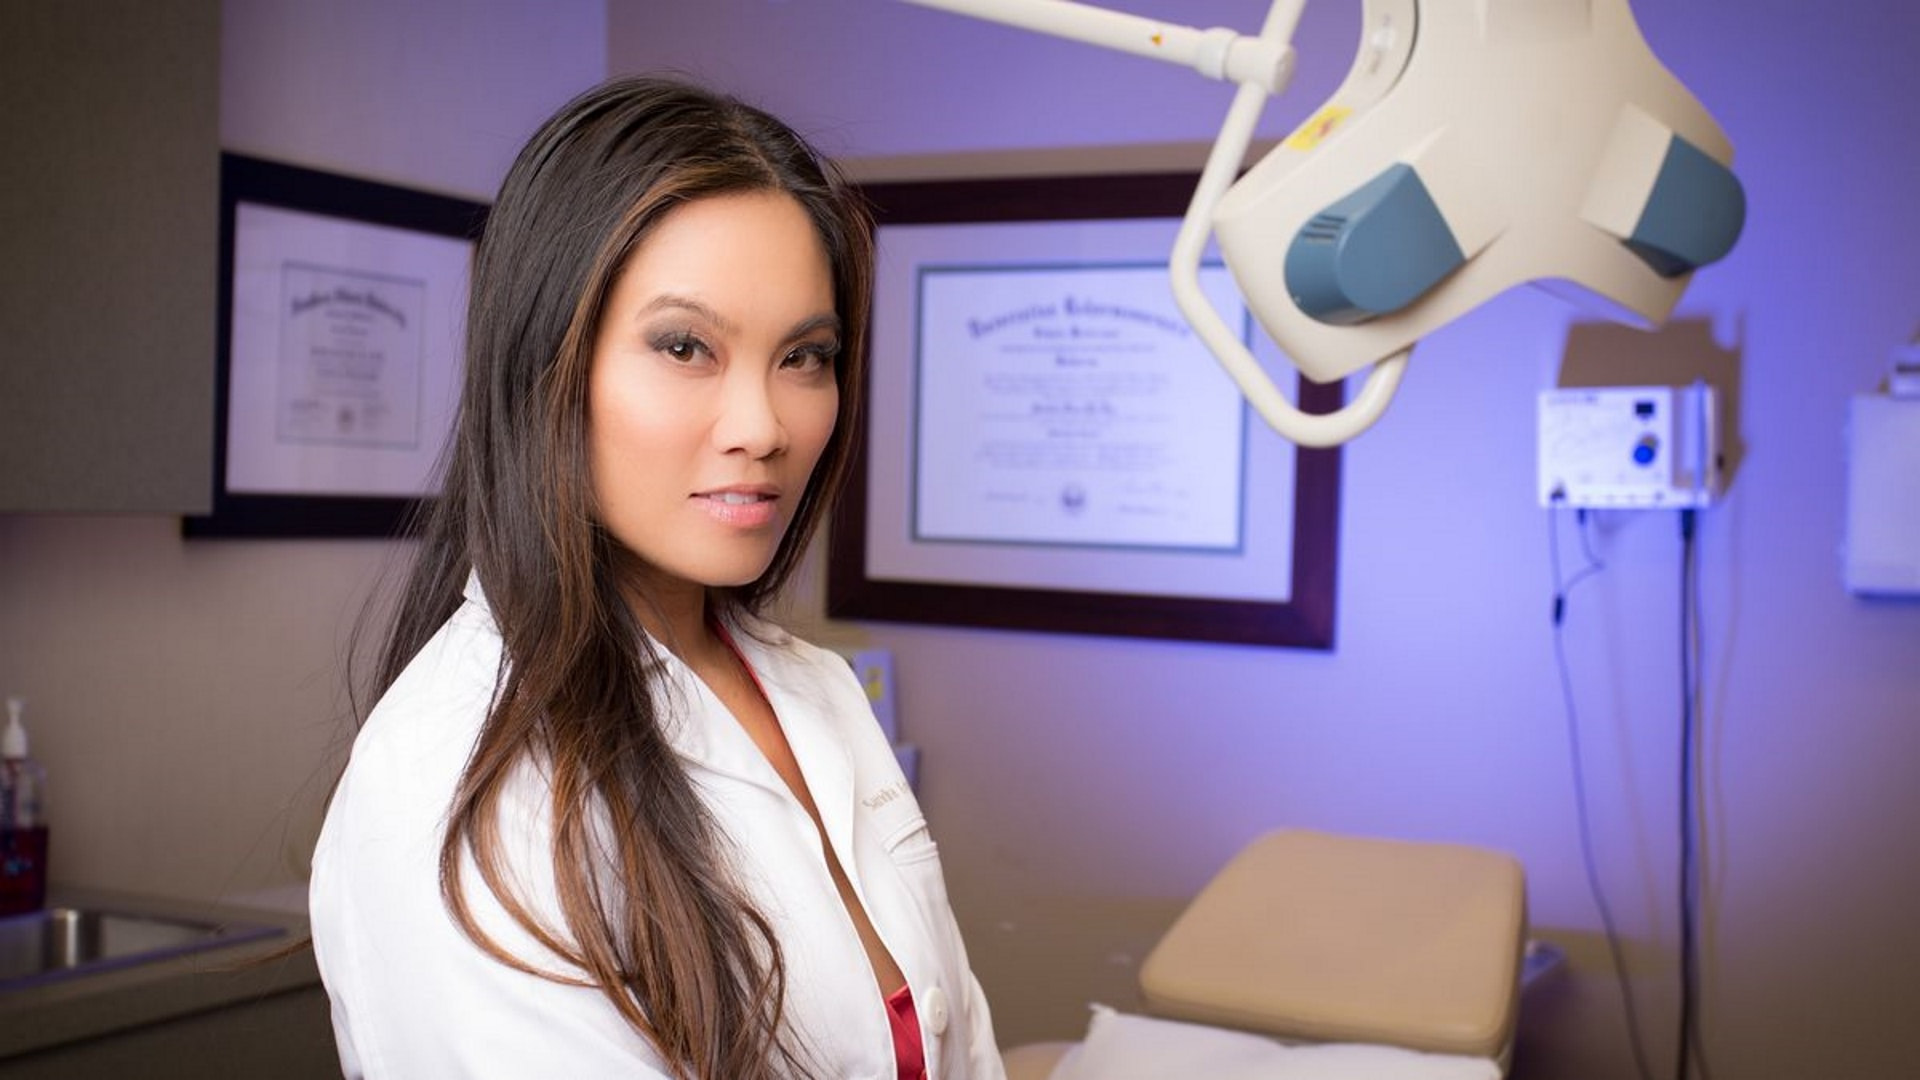 Dr Pimple Popper Season 4 Watch Online Movies For Free